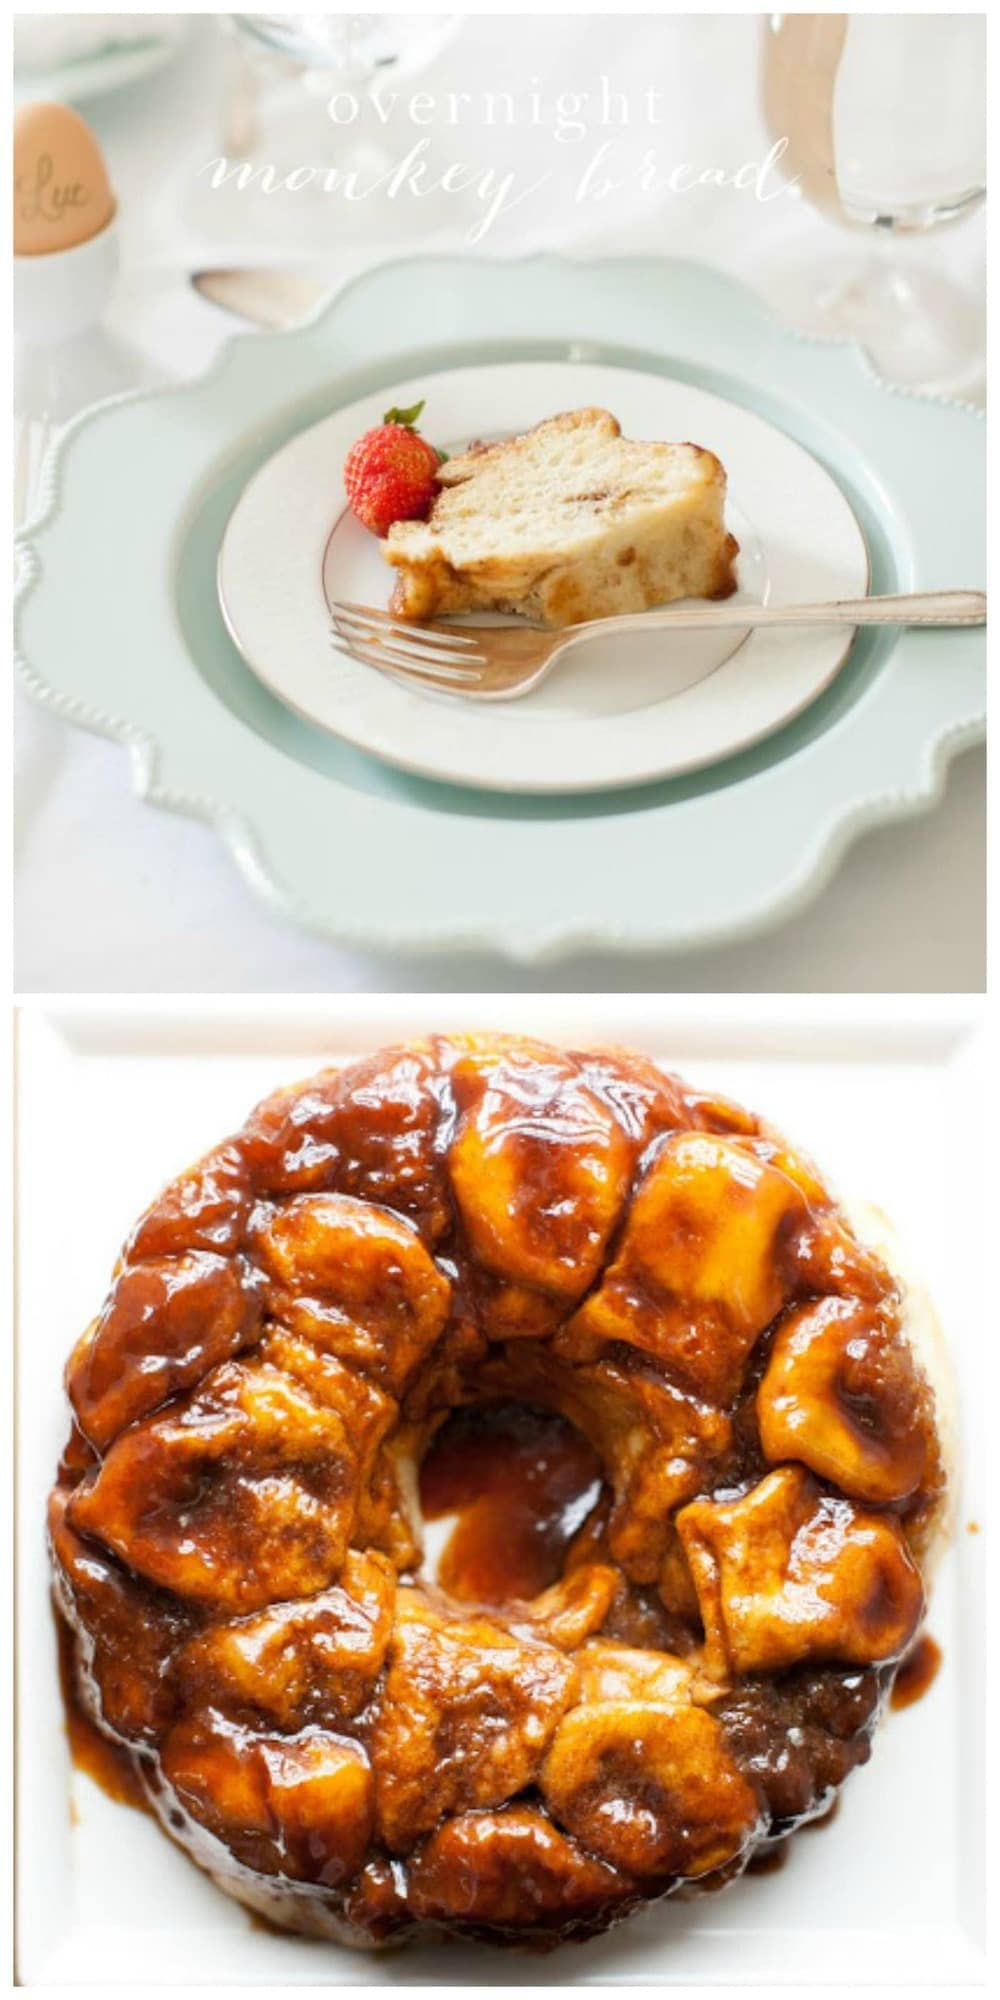 Easy overnight monkey bread recipe - a brunch favorite!